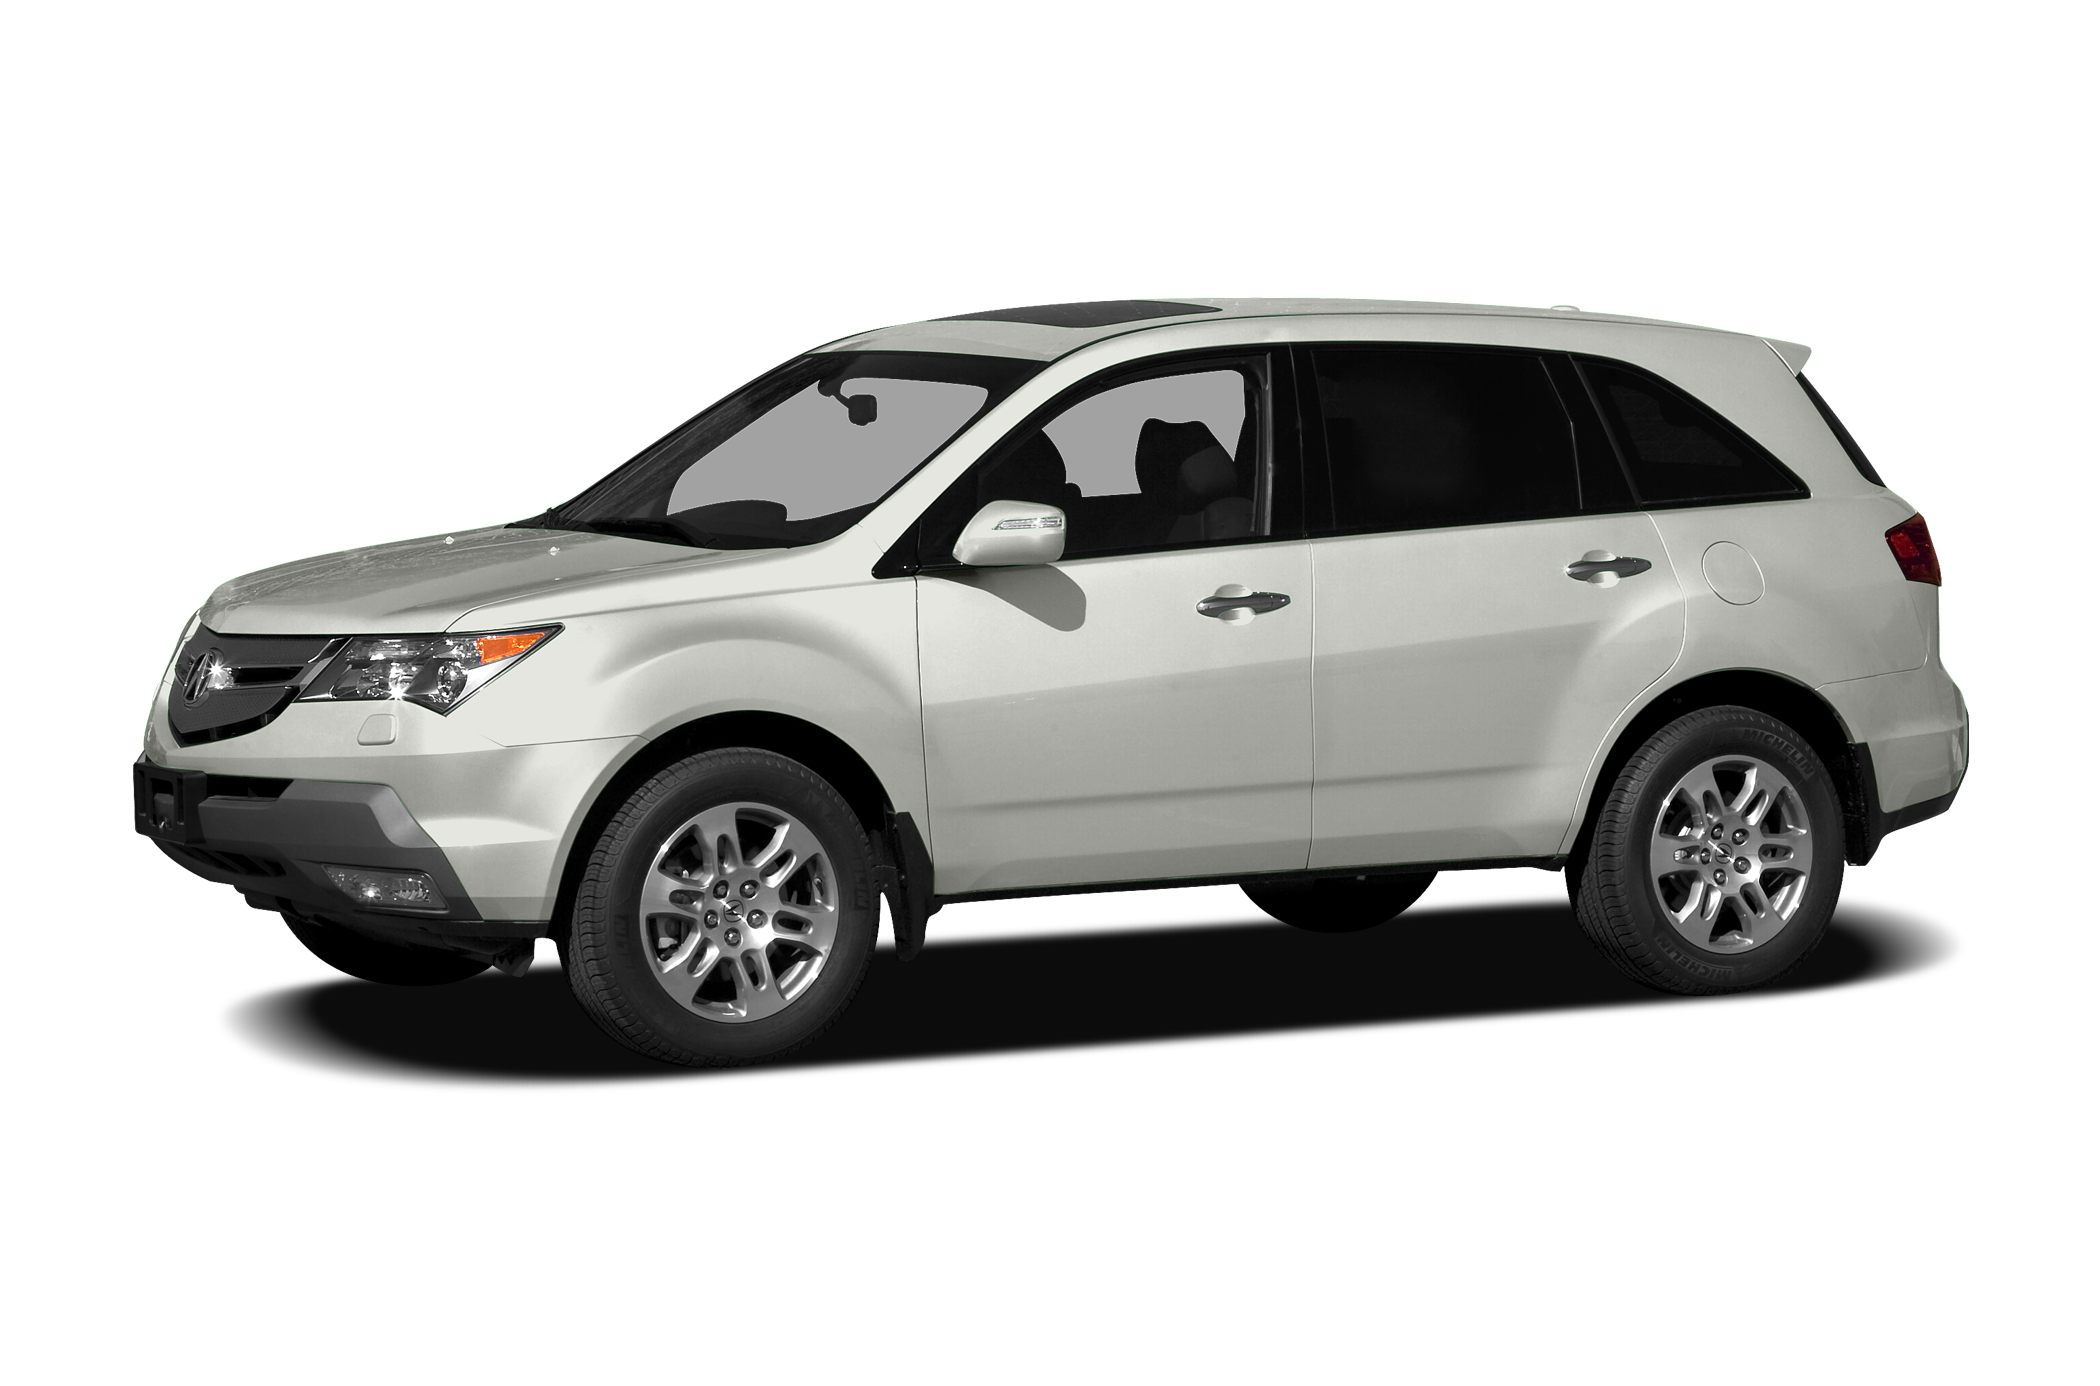 2007 Acura MDX Sport SUV for sale in Austin for $14,995 with 138,156 miles.